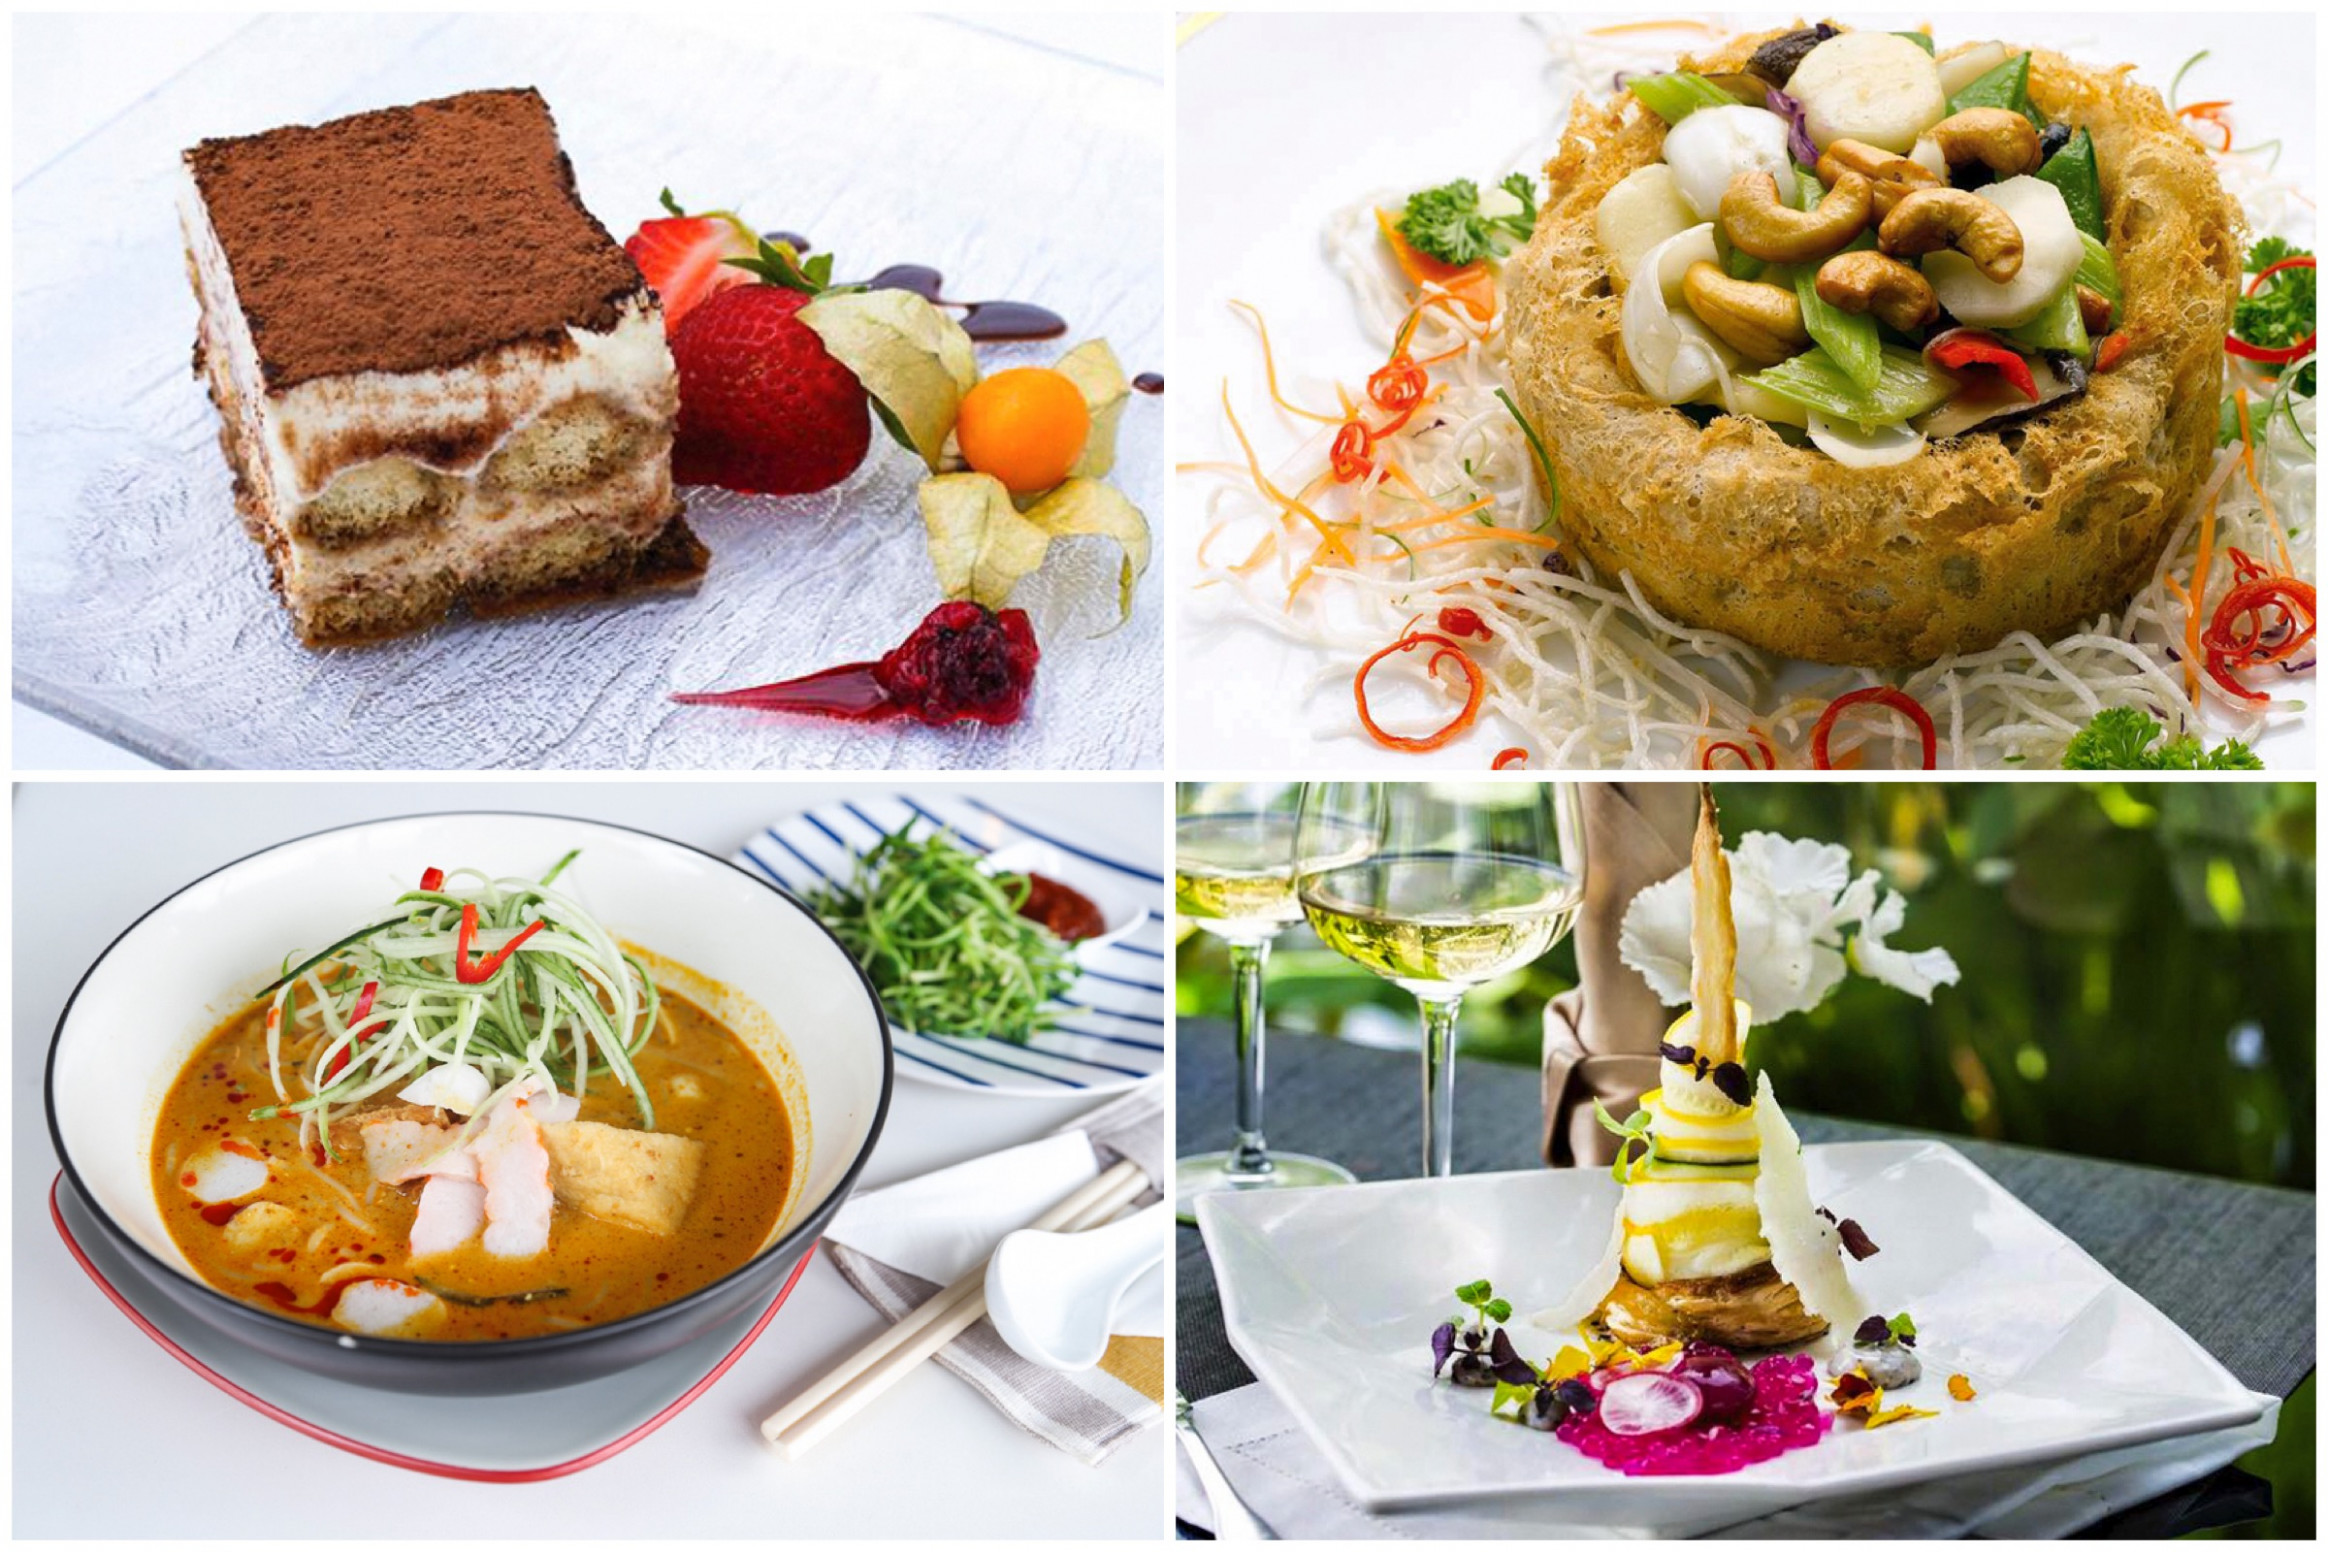 11 Best Vegetarian And Vegan Restaurants In Singapore, That ..